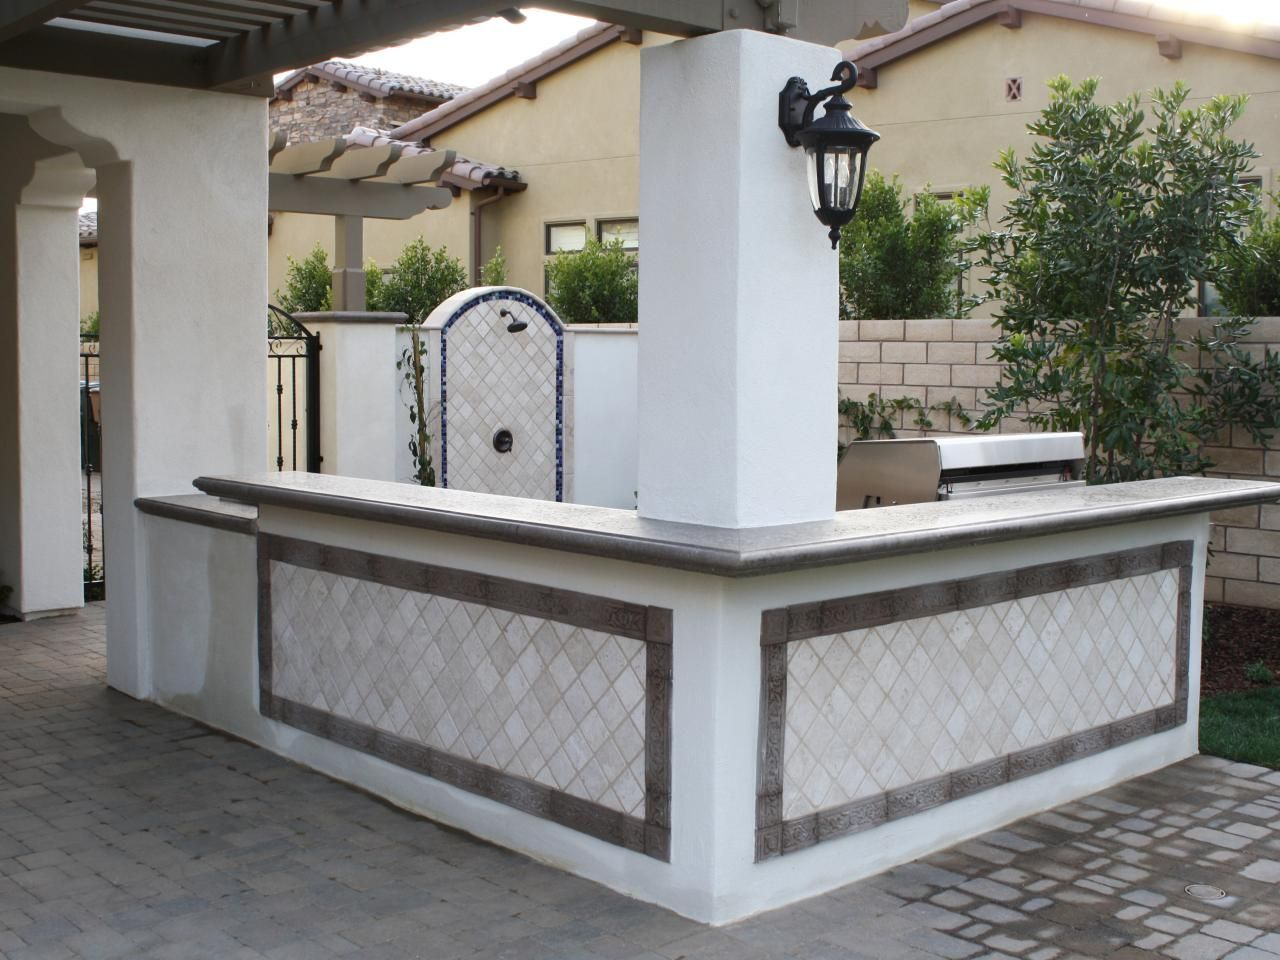 Stainless Steel Outdoor Kitchen This Mediterranean Outdoor Kitchen Features A Large Stainless